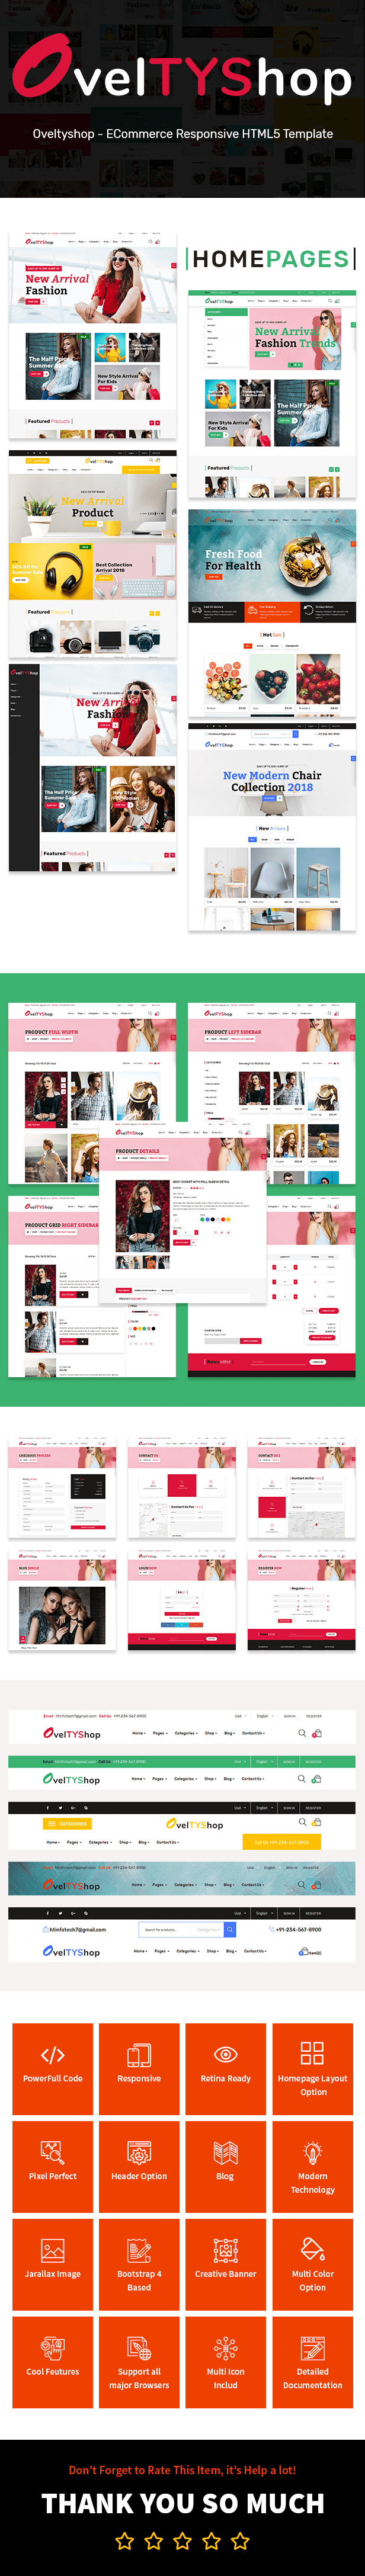 Oveltyshop - ECommerce Responsive Sectioned Drag & Drop Shopify Theme - 1